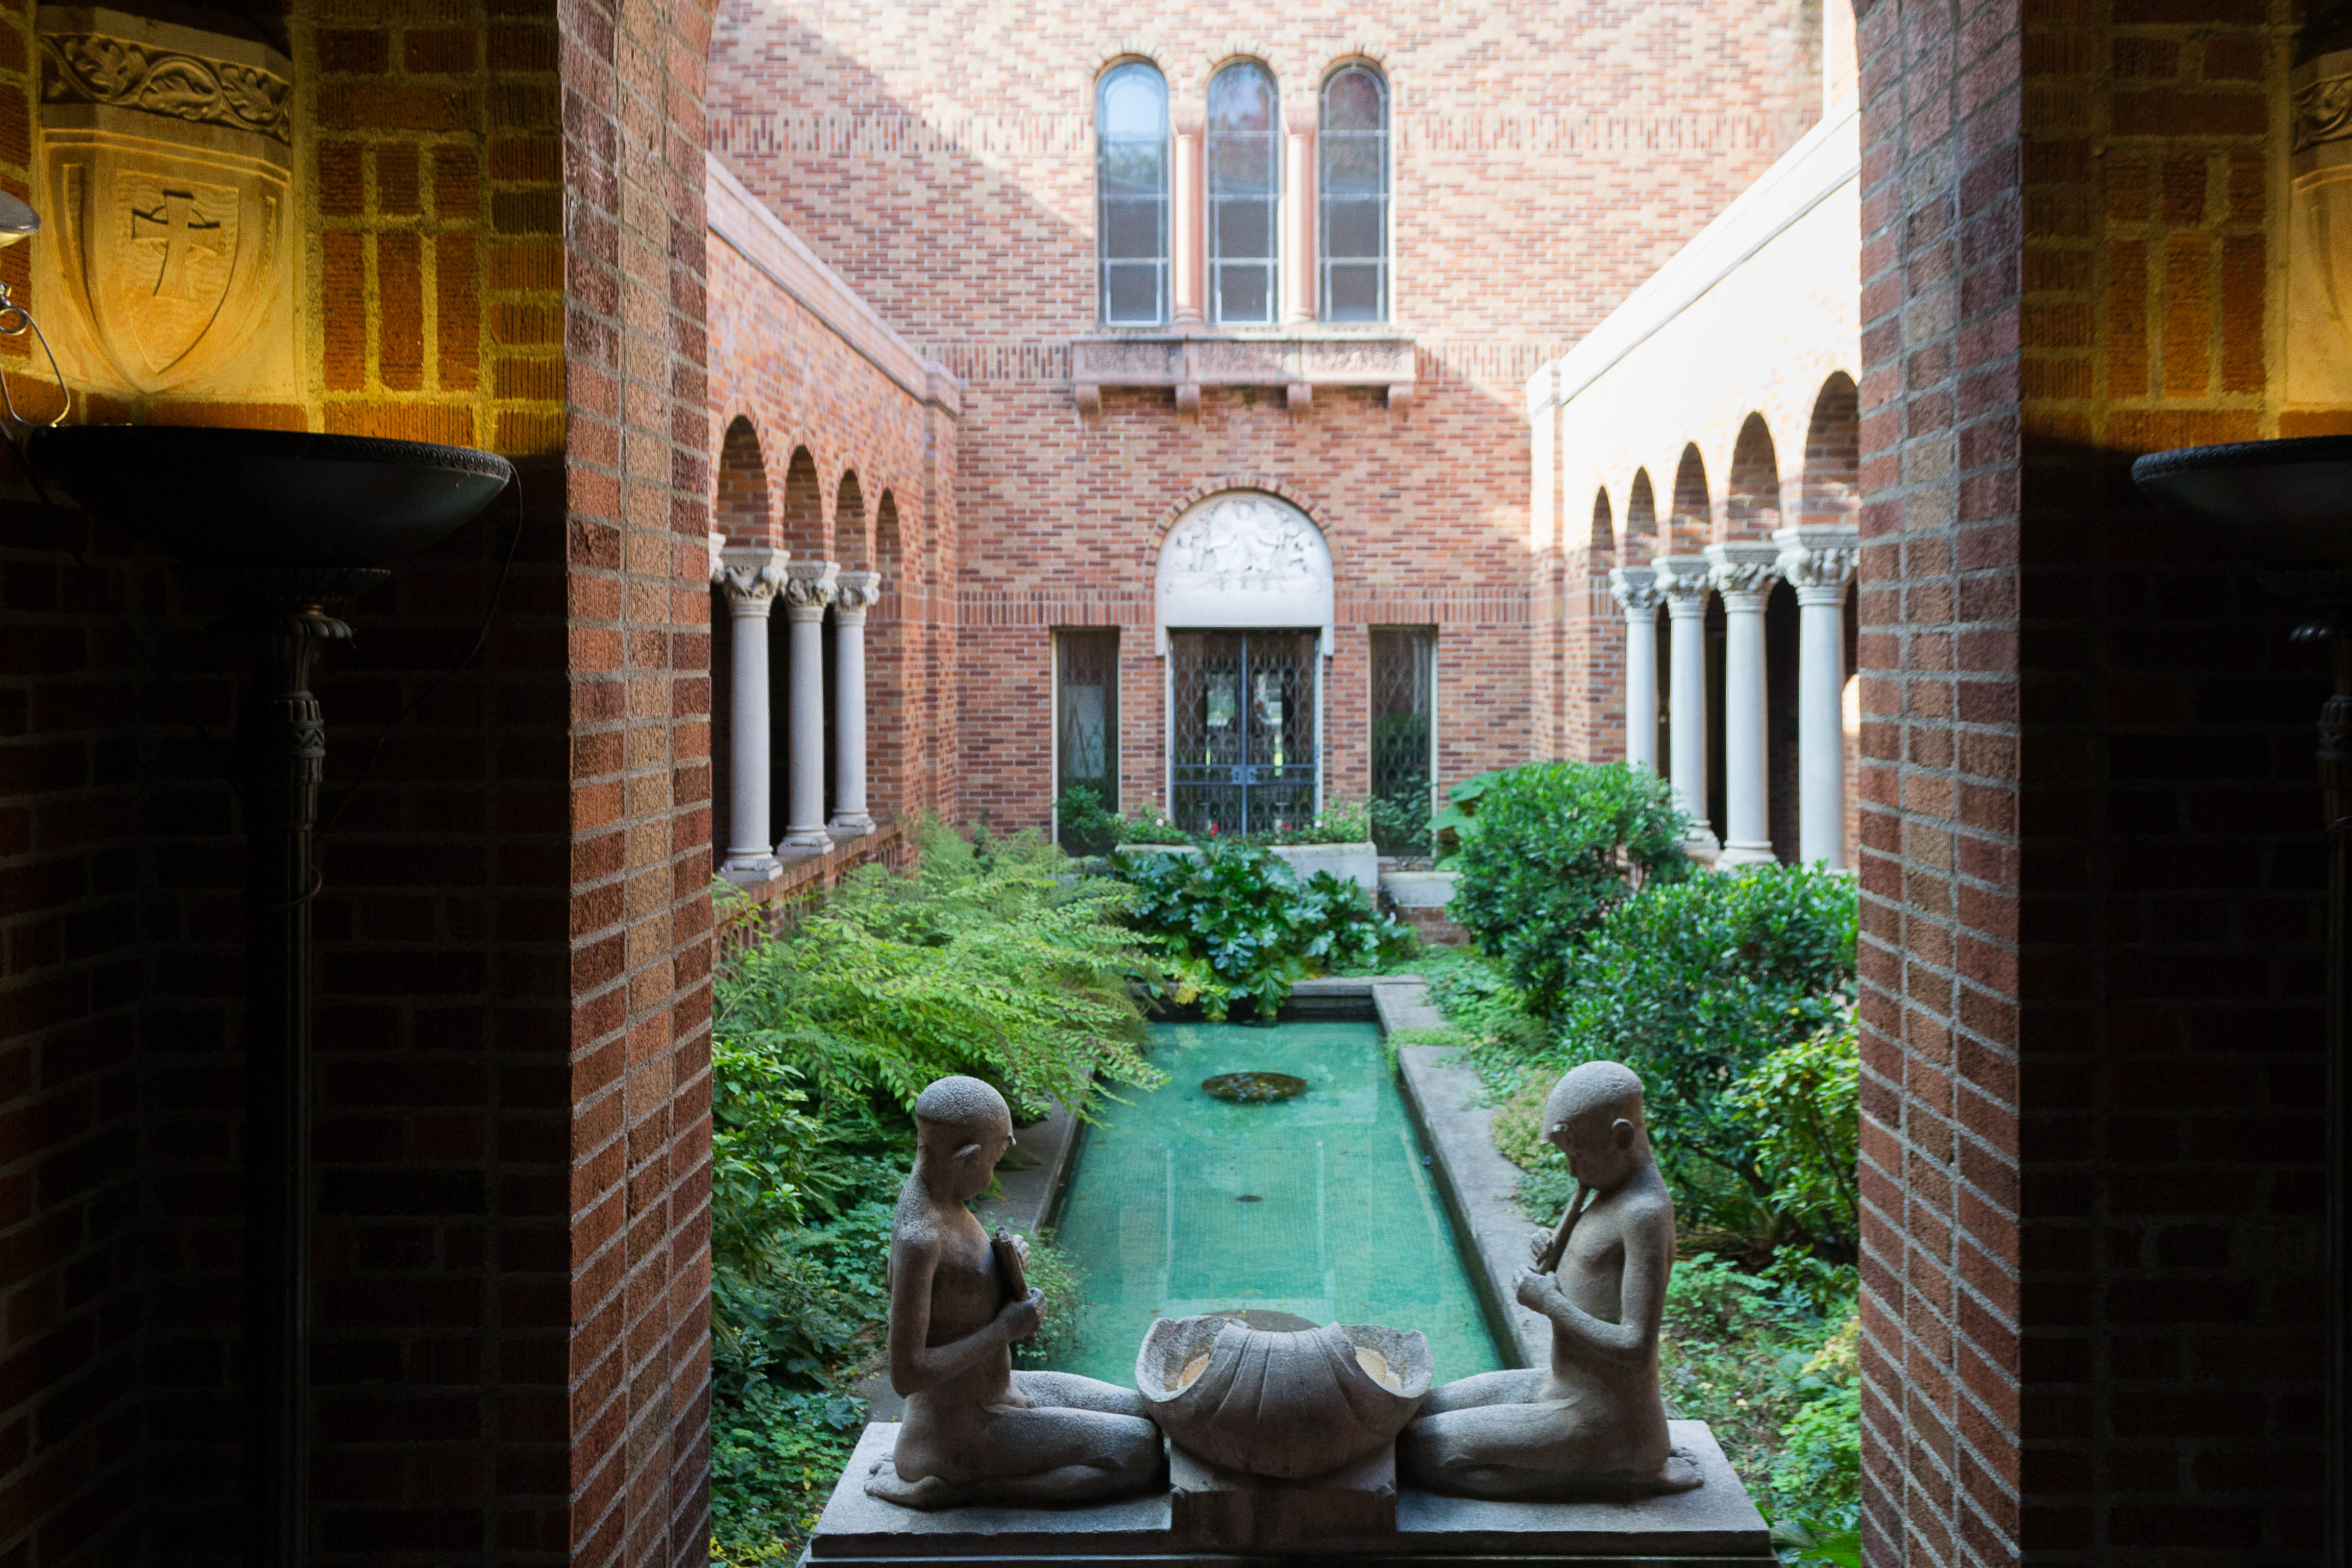 This courtyard garden is a highlight of the museum.